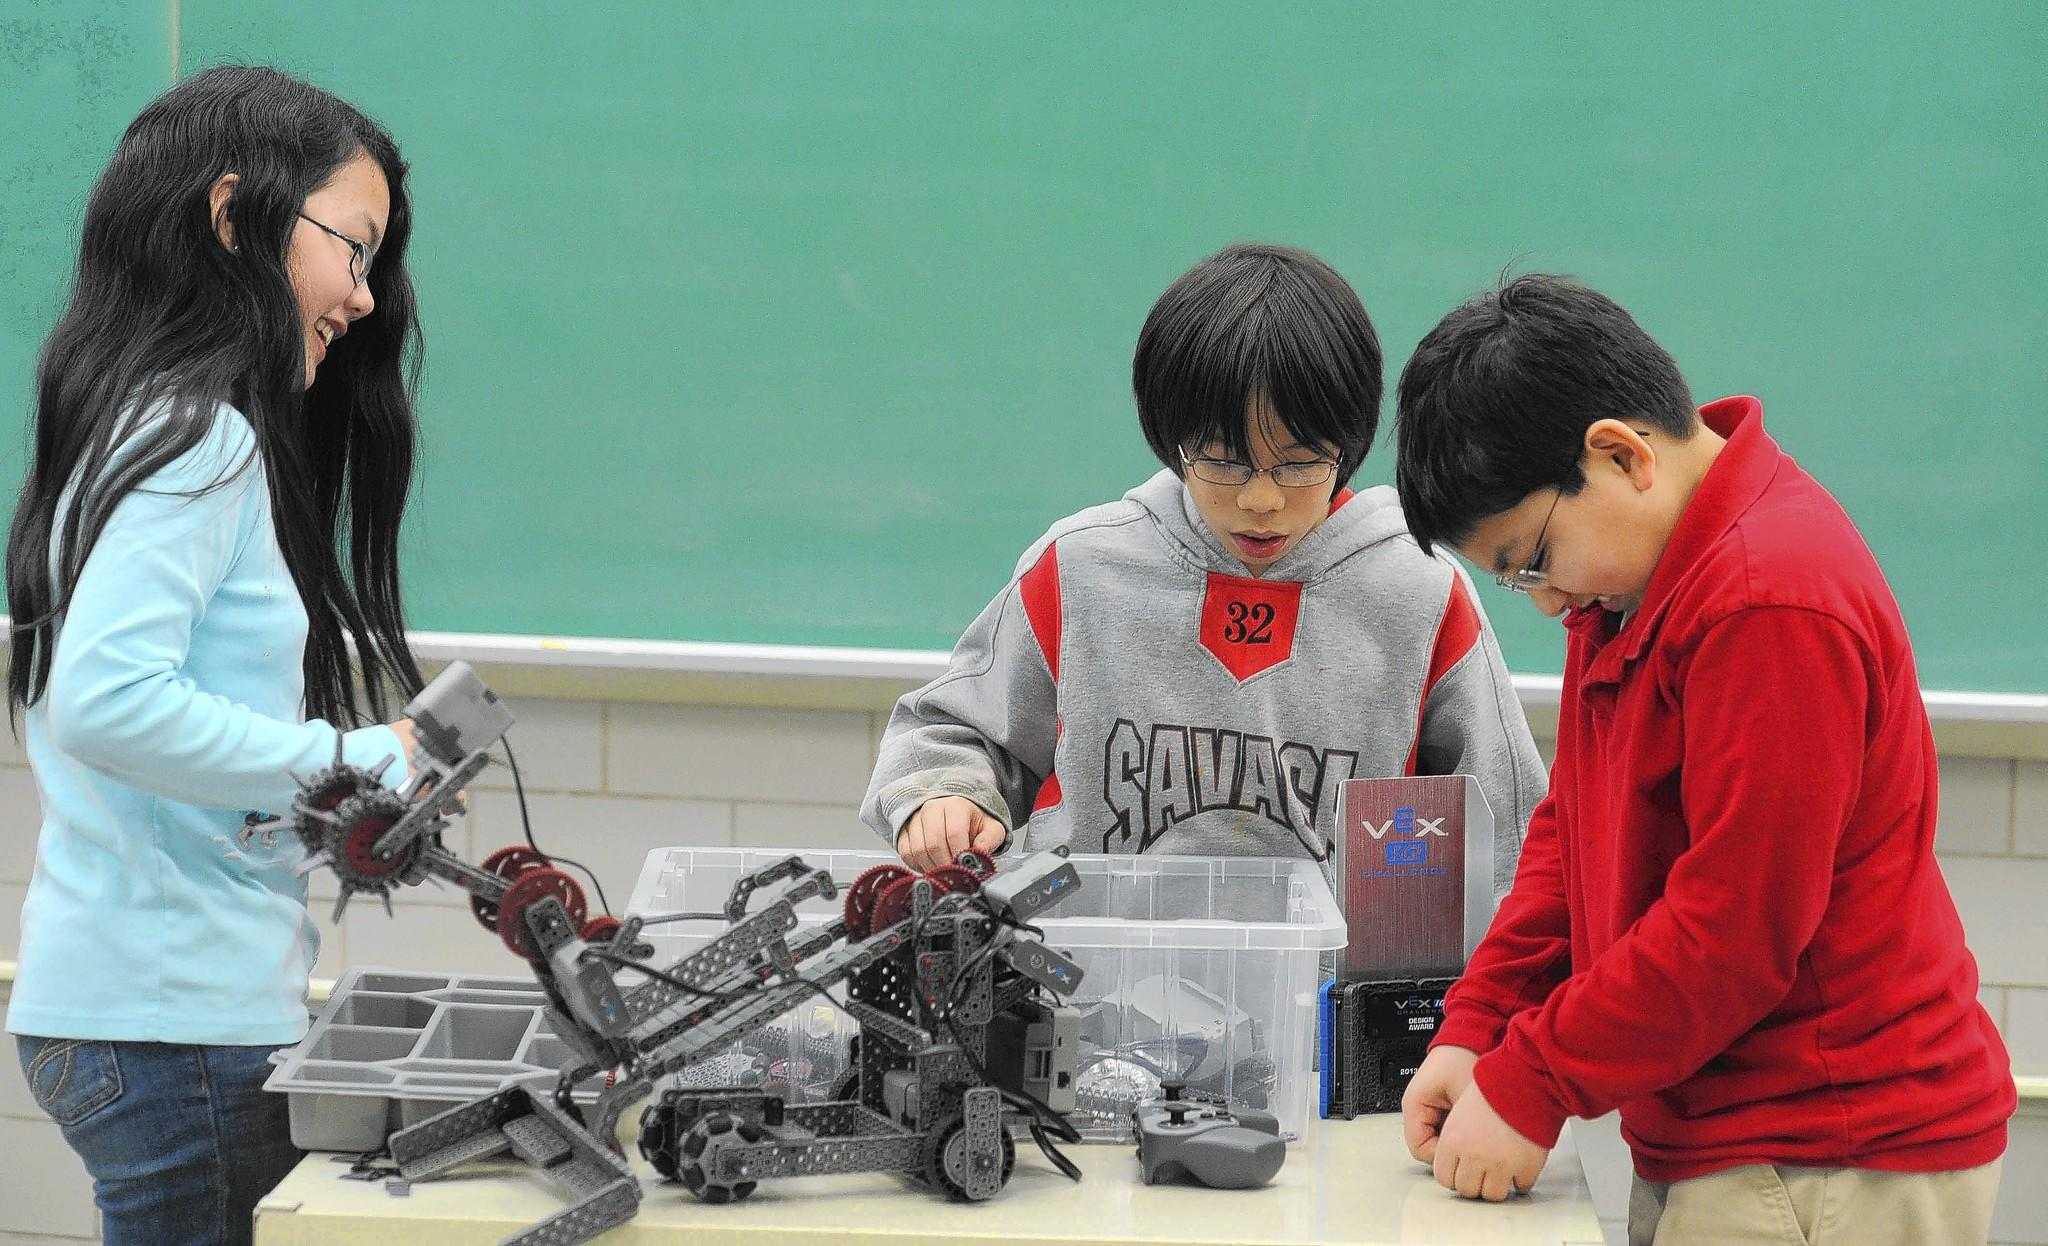 Ridgely Middle School students from left, Cindy Jia, 11, Yuma Sasaki, 11 and Arman Farazdaghi, 12, make adjustments to their team's robot in preparation for the upcoming VEX Robotics Championship in Anaheim, Calif. in April.